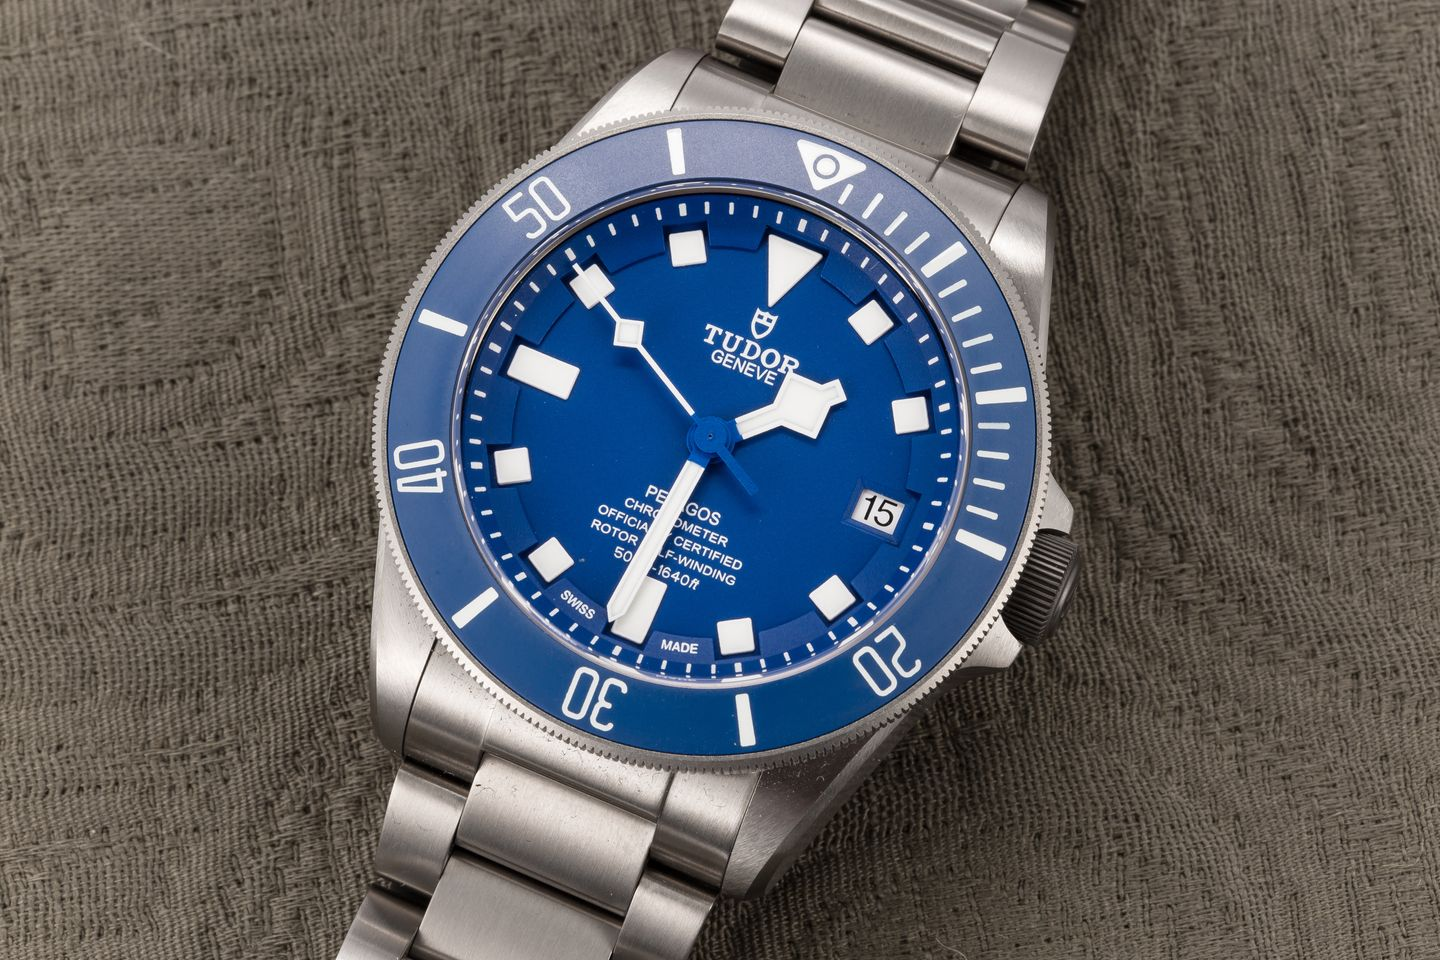 Tudor Pelagos 5D3 3452 copy - Luxury Watch Brands Like Rolex: The Official Buying Guide